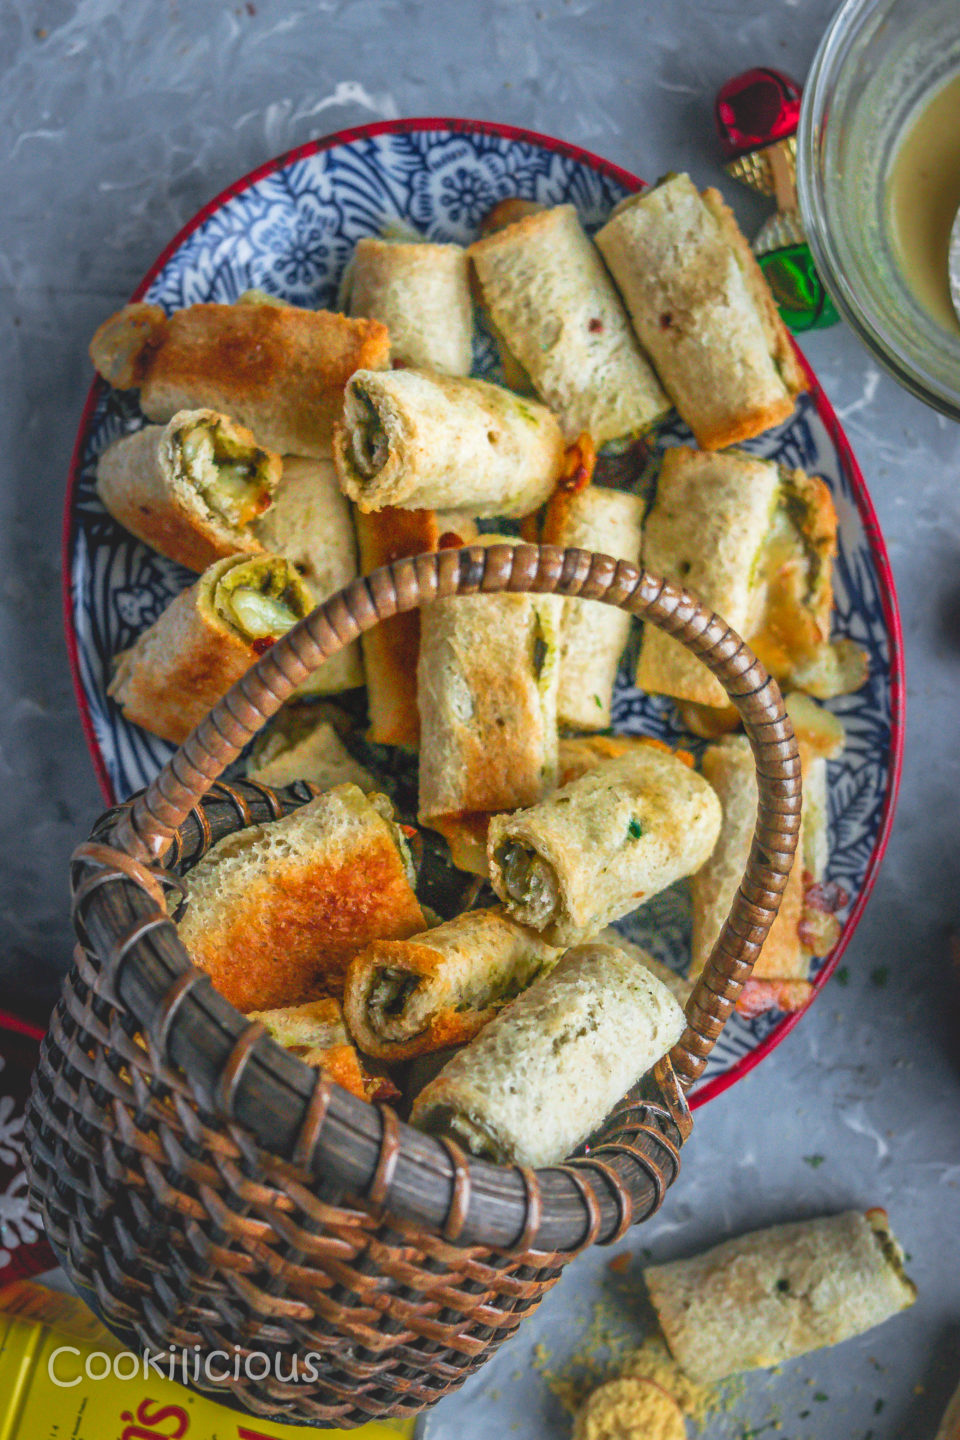 a basket filled with Baked Bread & Chutney Rolls fallen over a plate